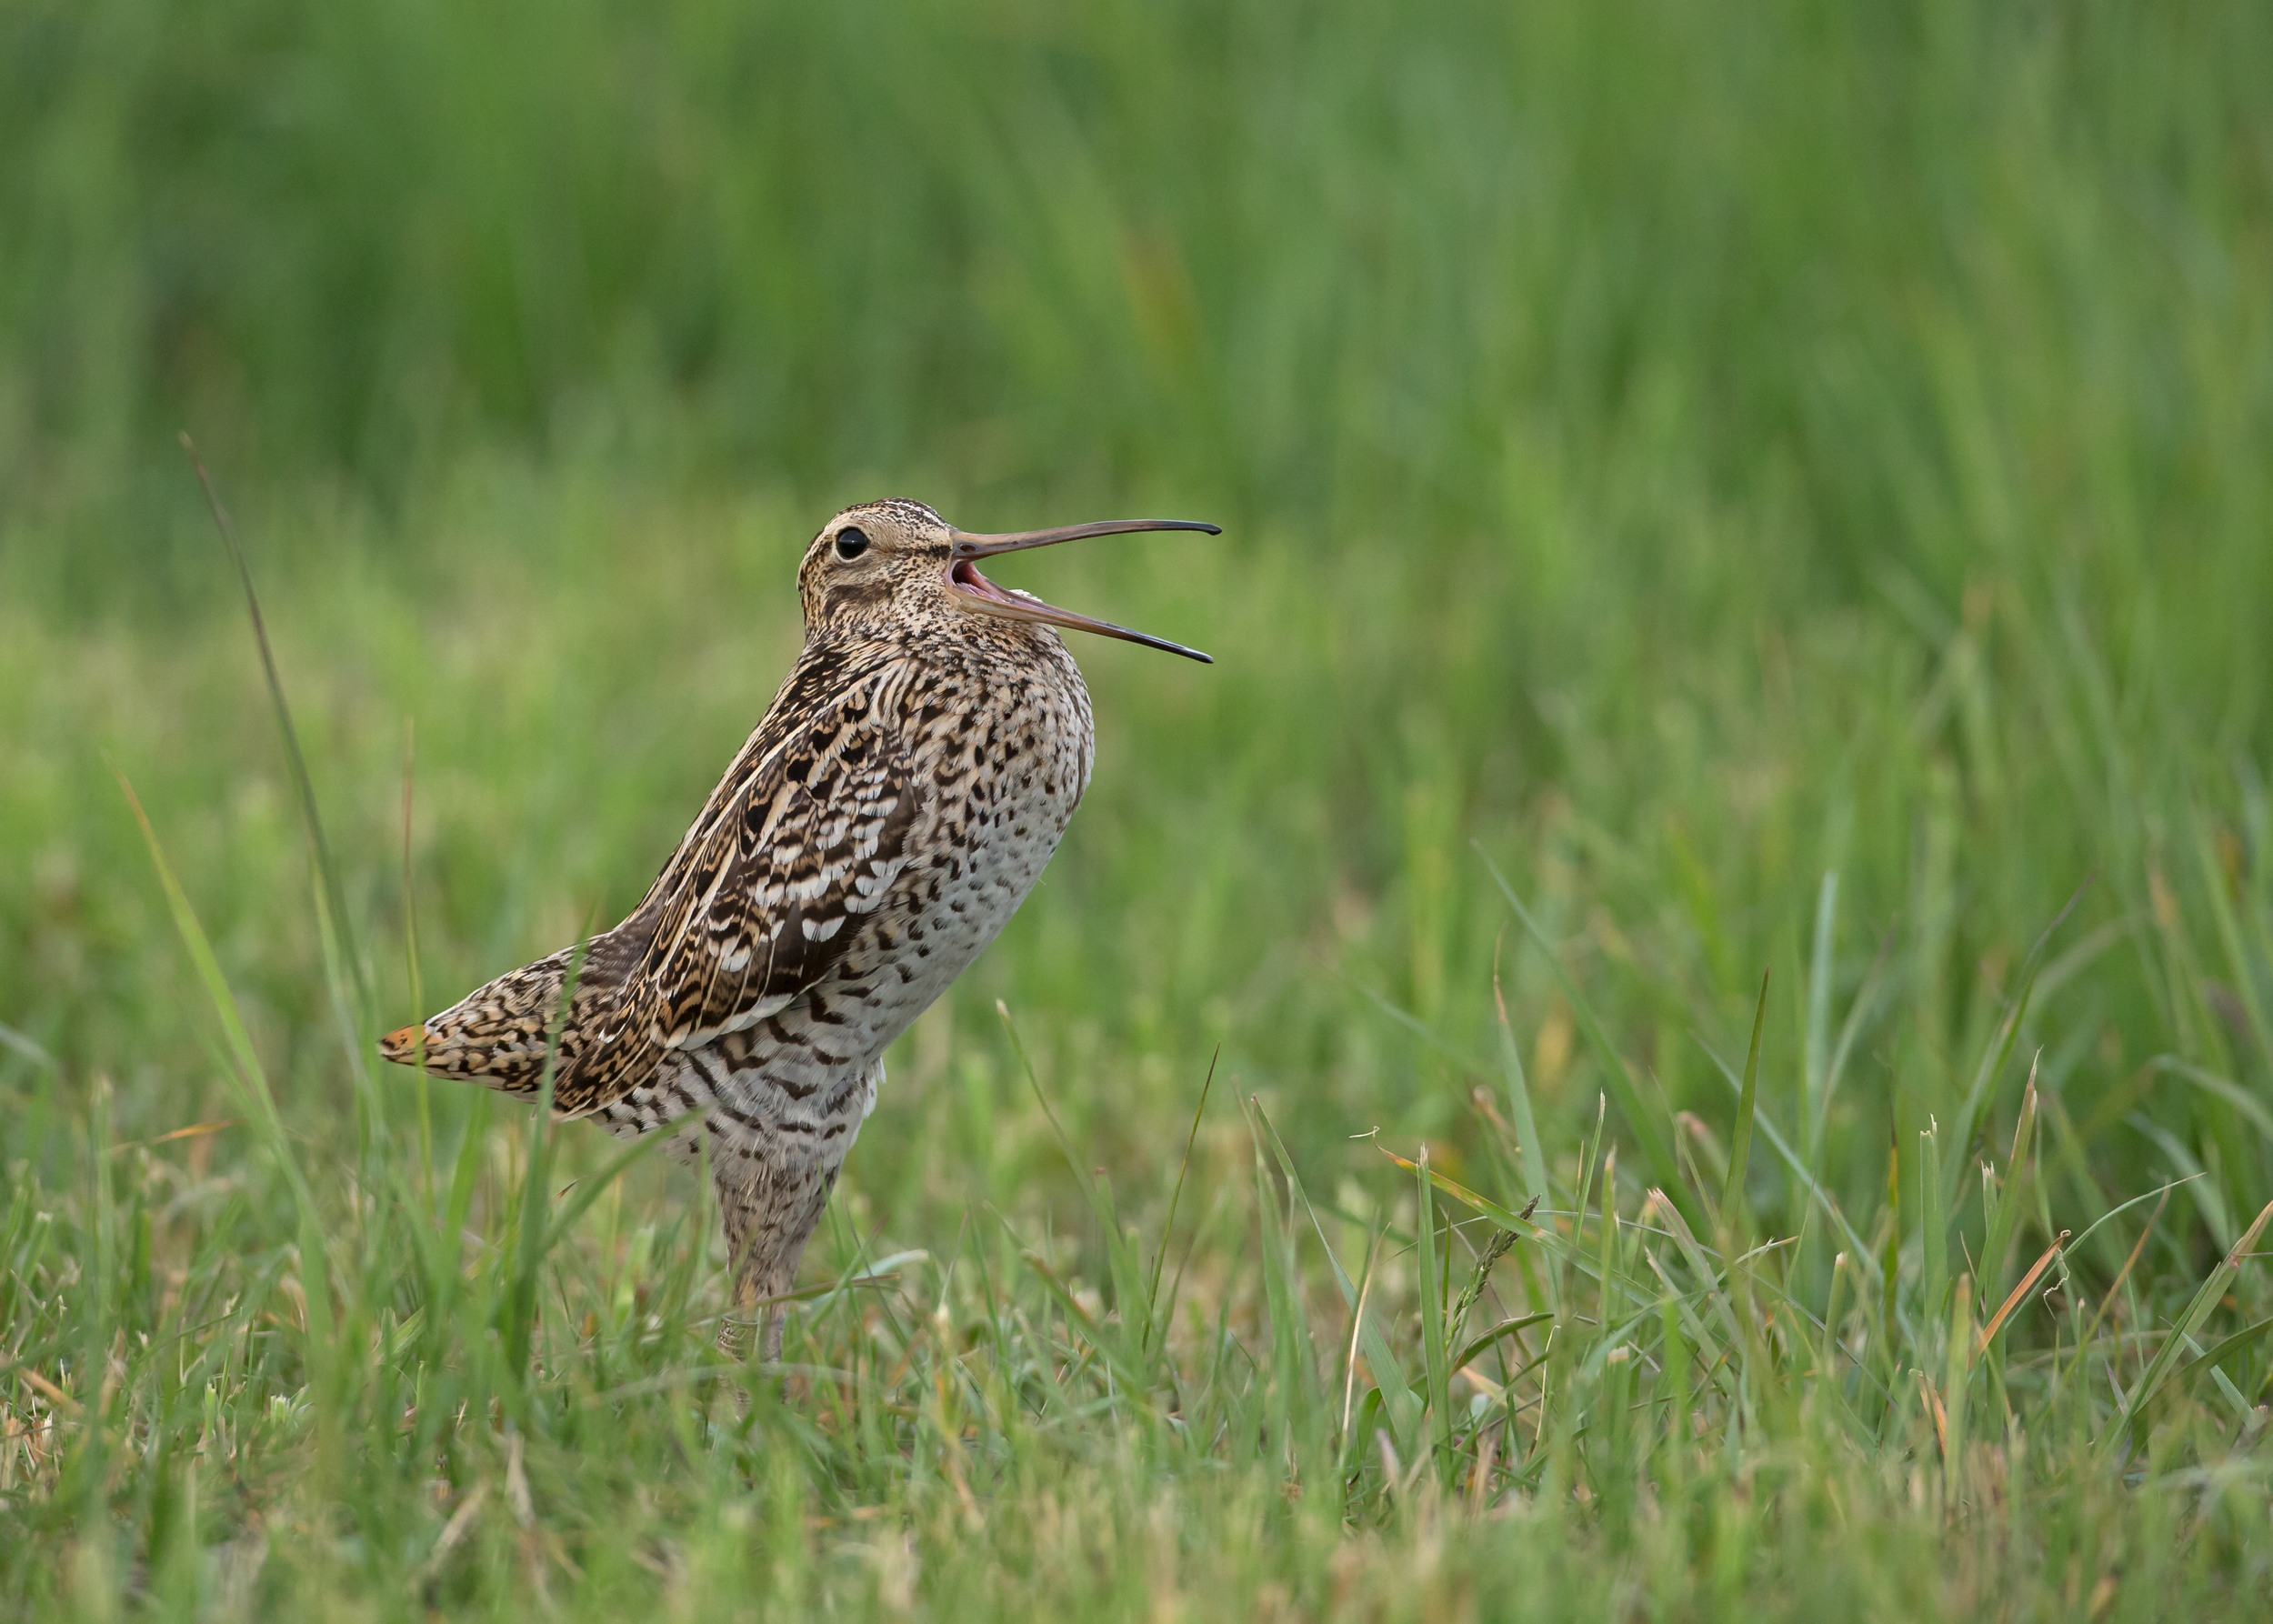 A Great Snipe in full display at its lek by the Pripyat River in Belarus